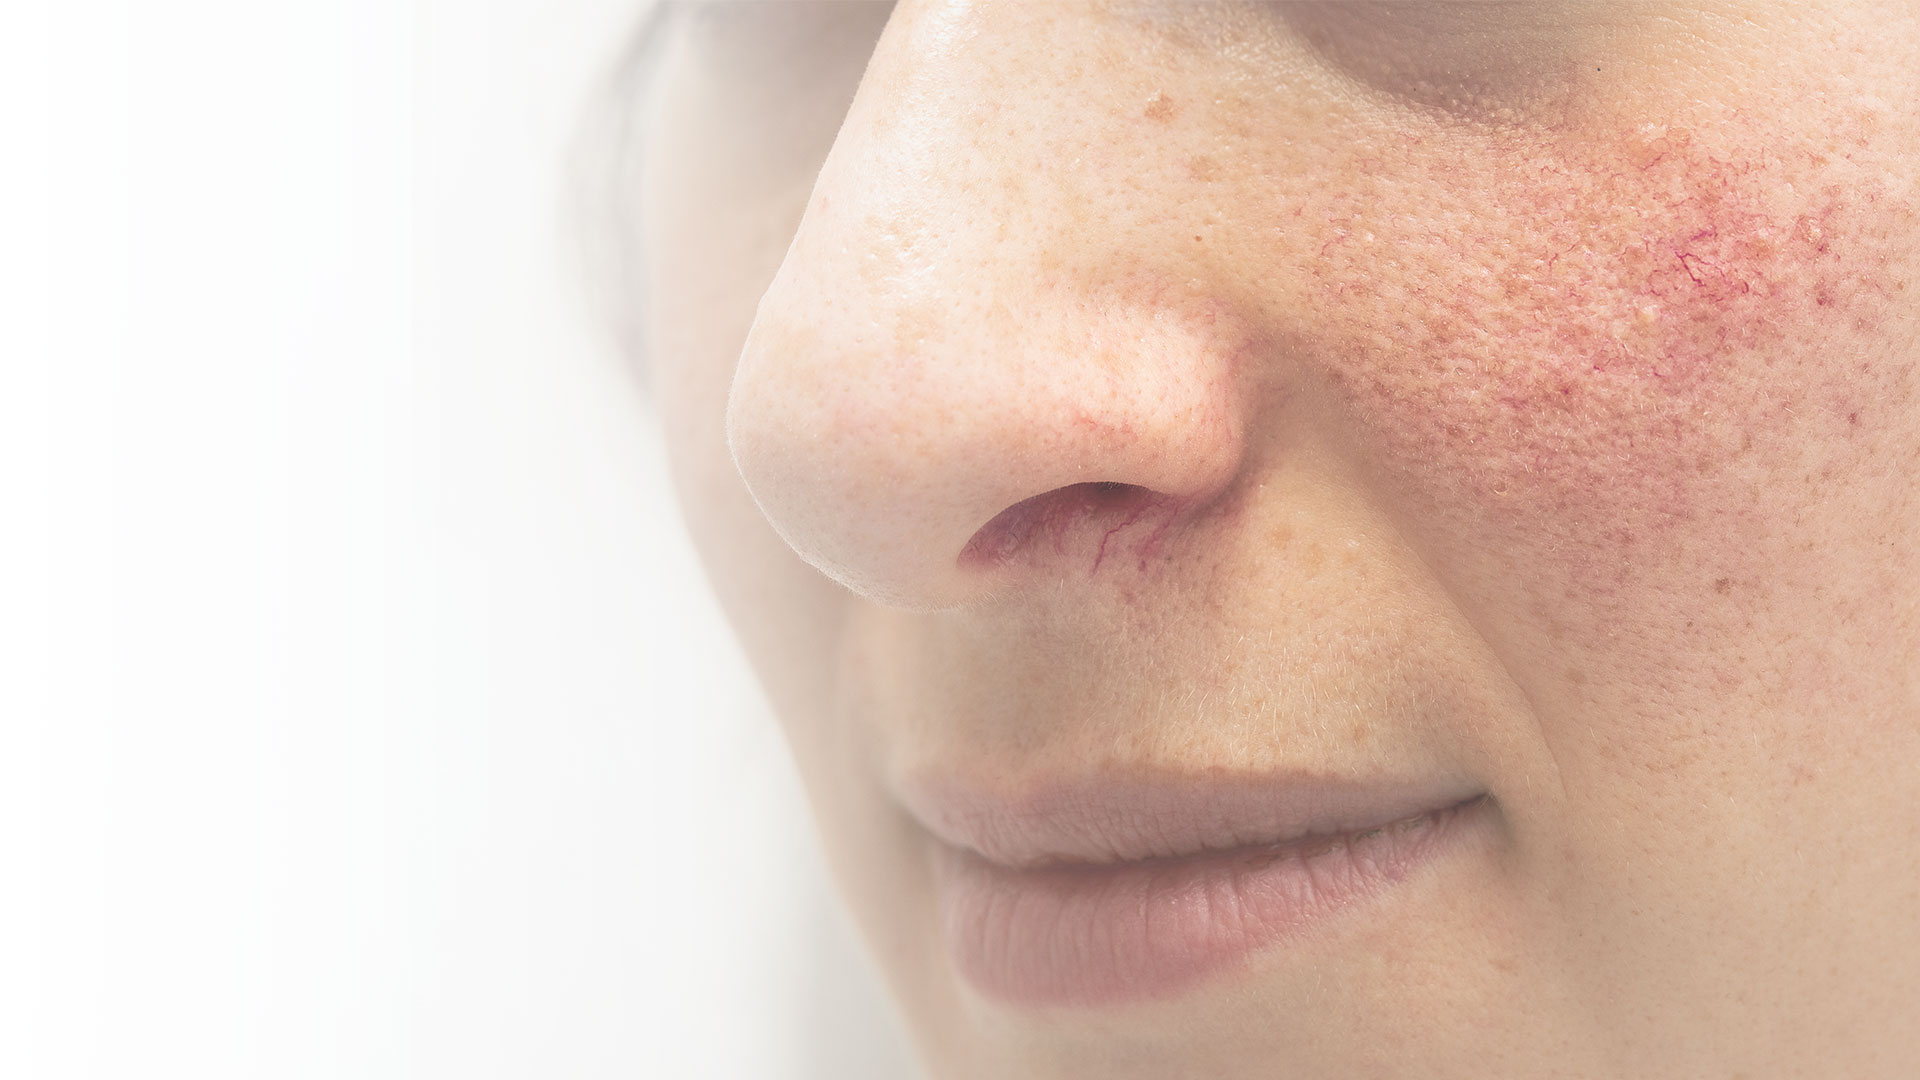 stock image of rosacea patient in NYC